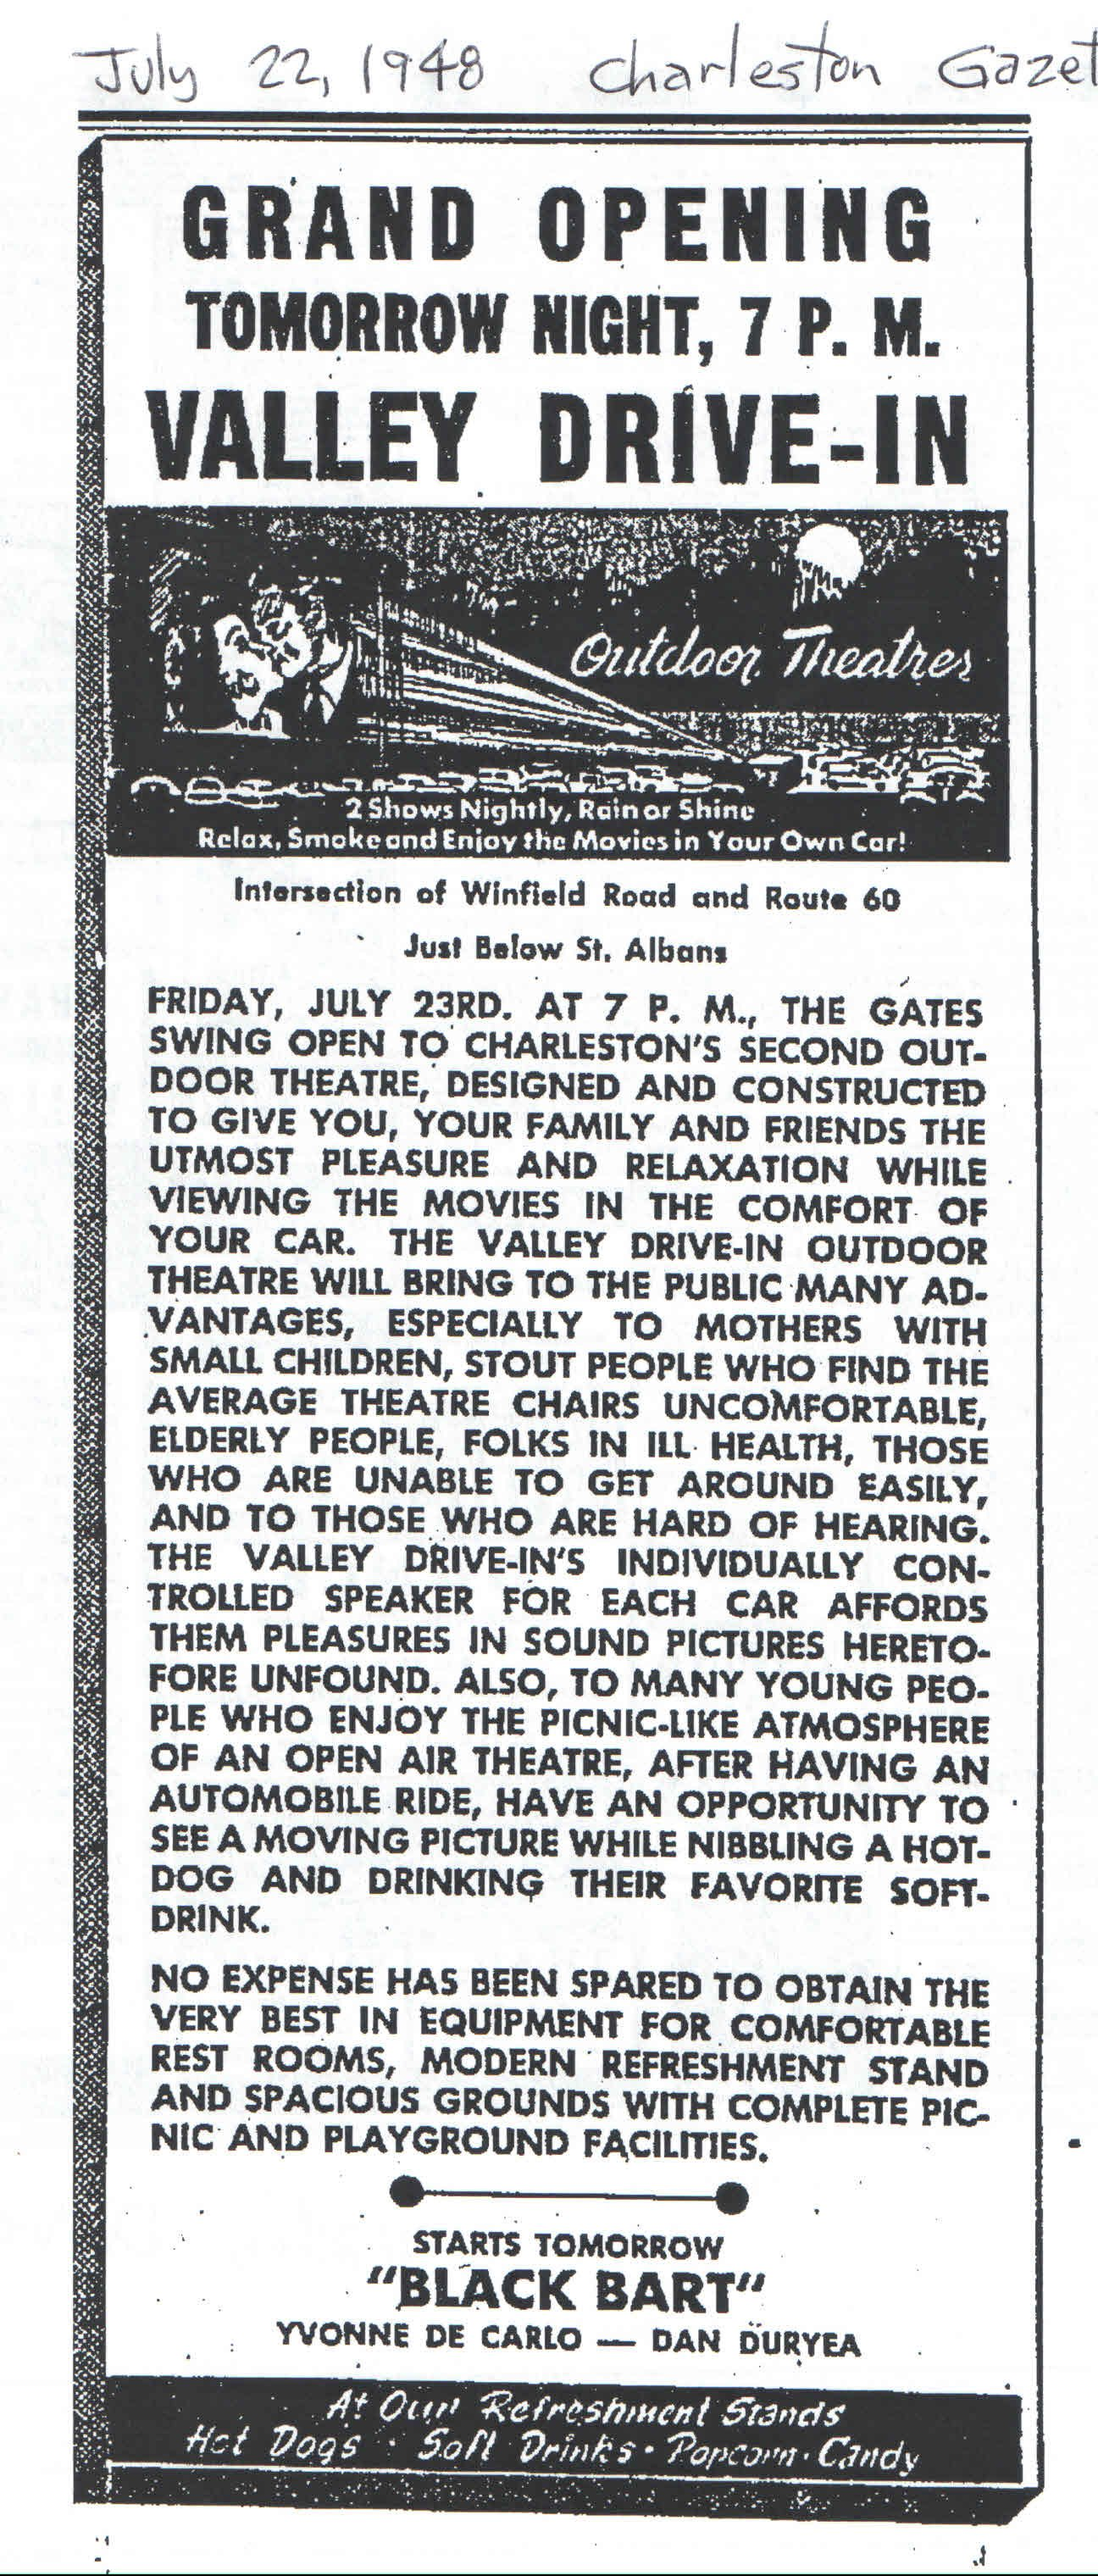 Former Valley Drive in Theater Grand Opening ad (1948)